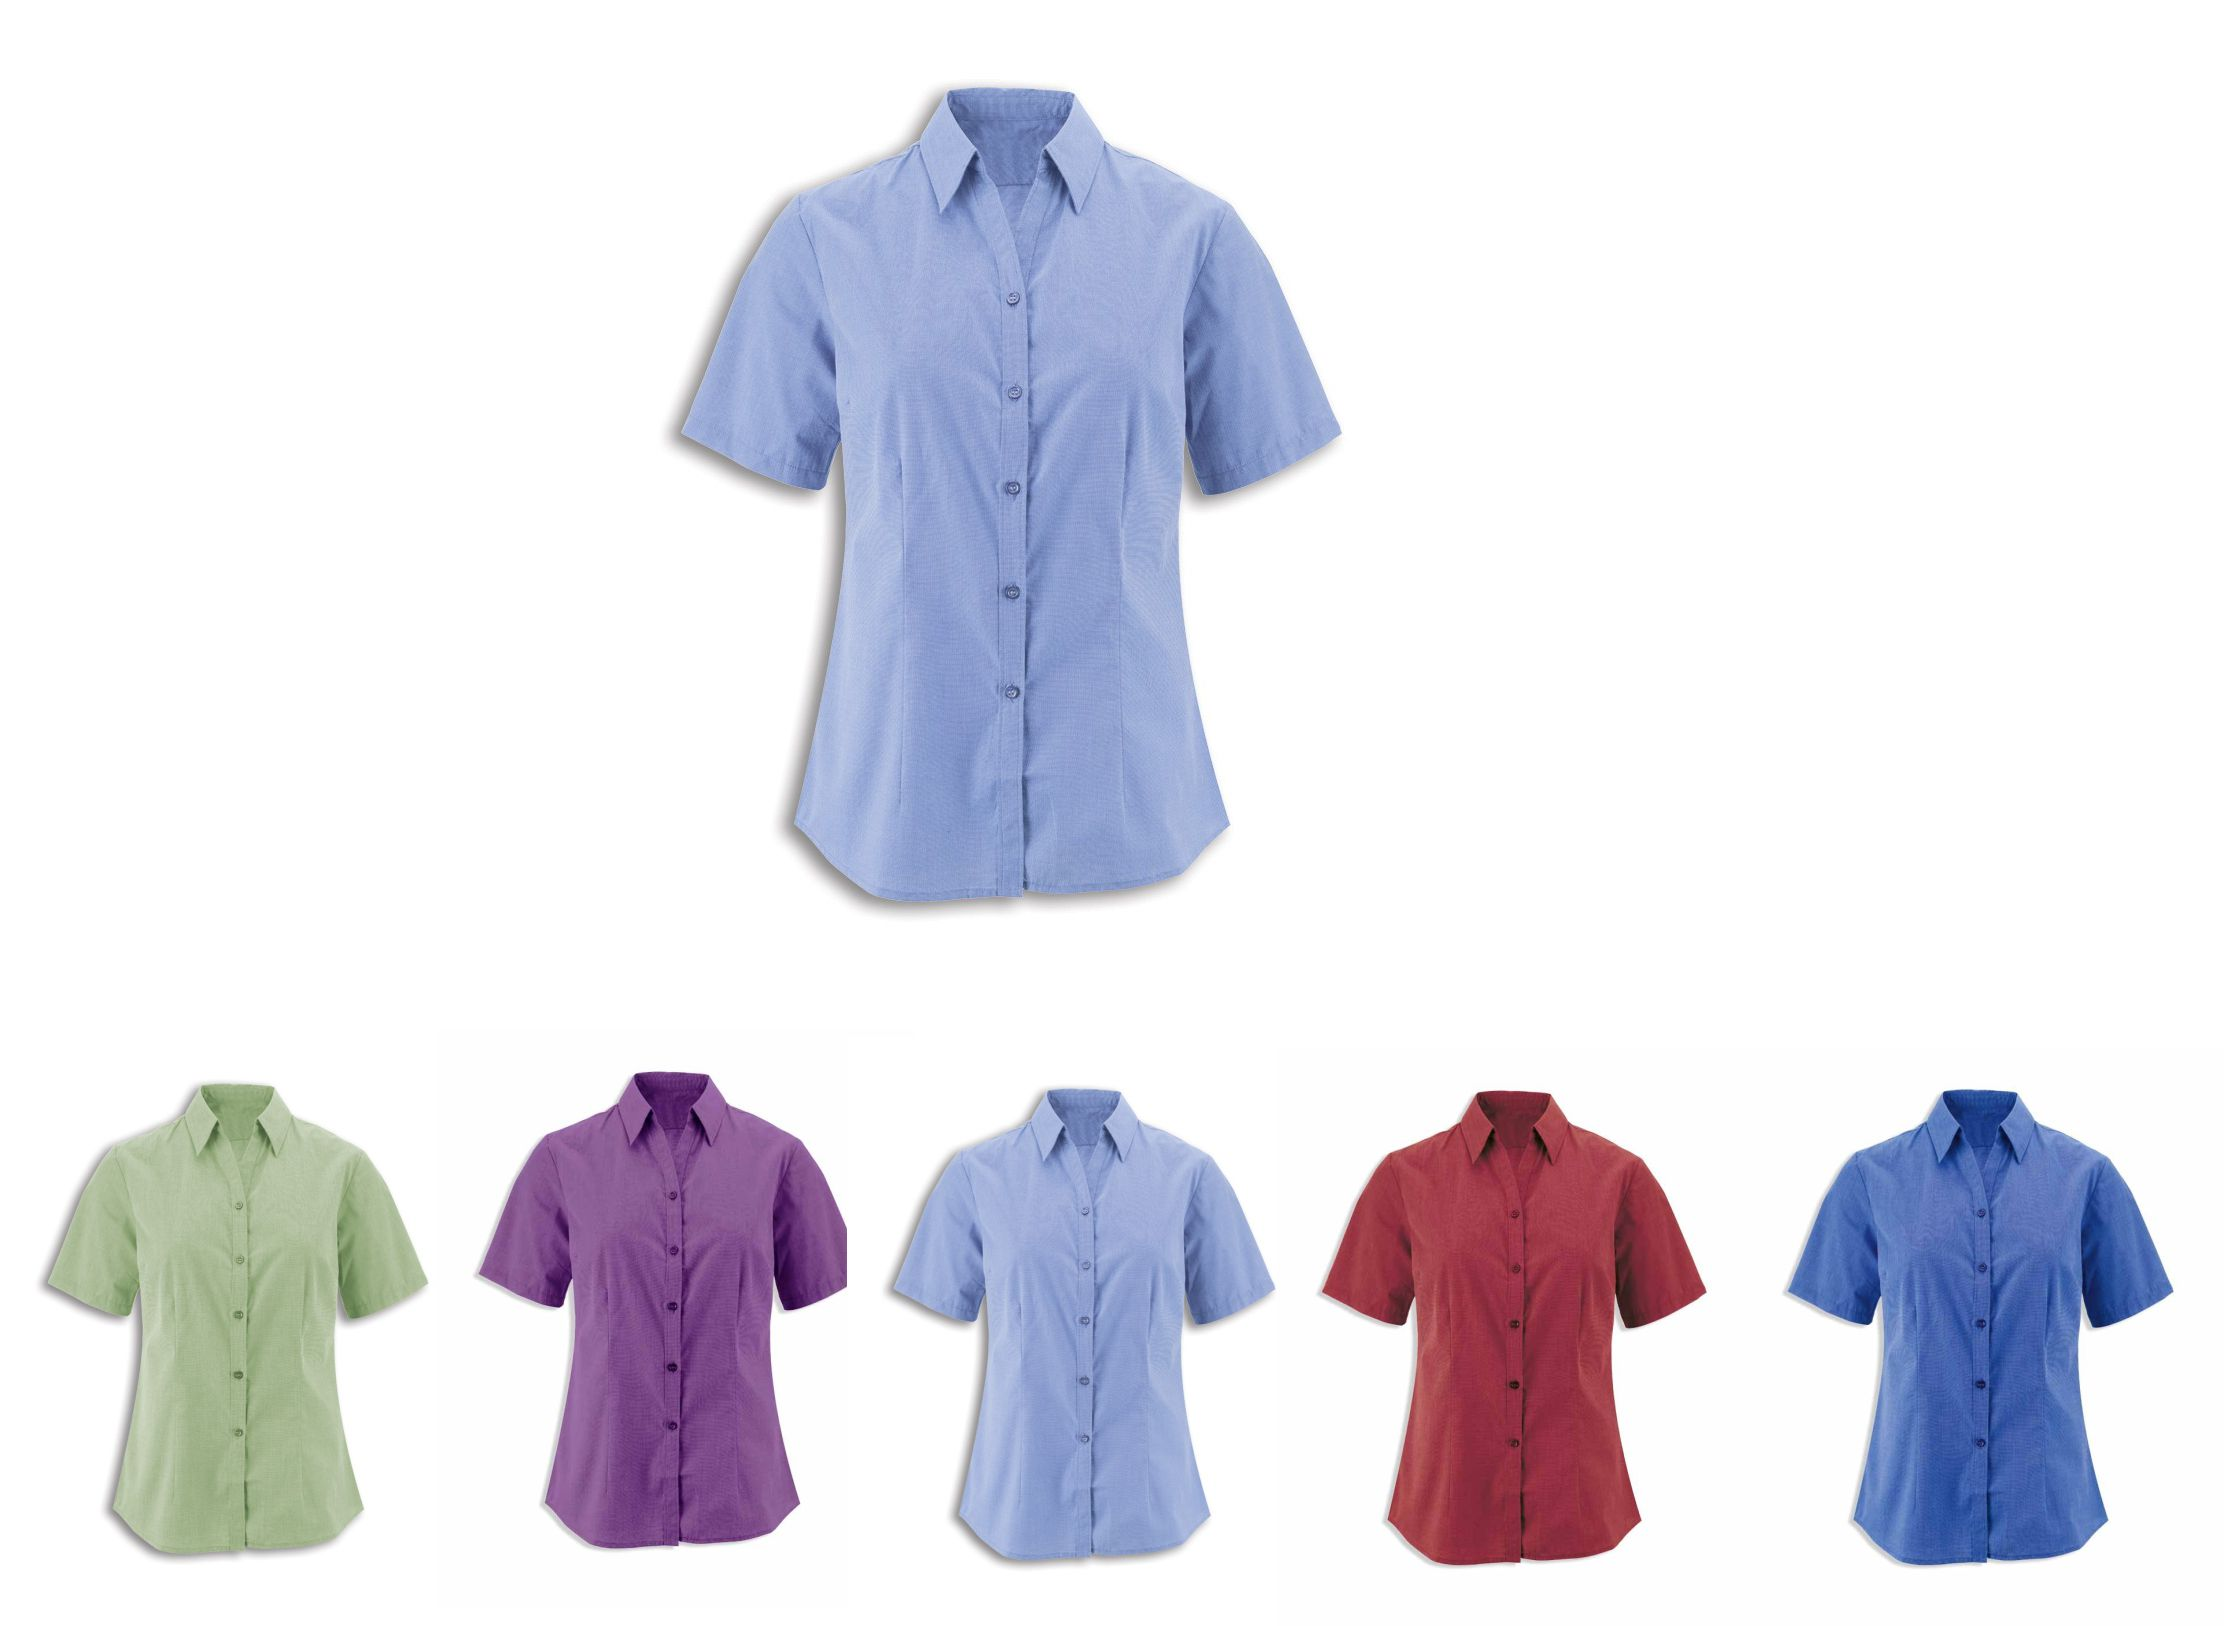 NF160 Women's Woven Coloured Short Sleeve Shirt